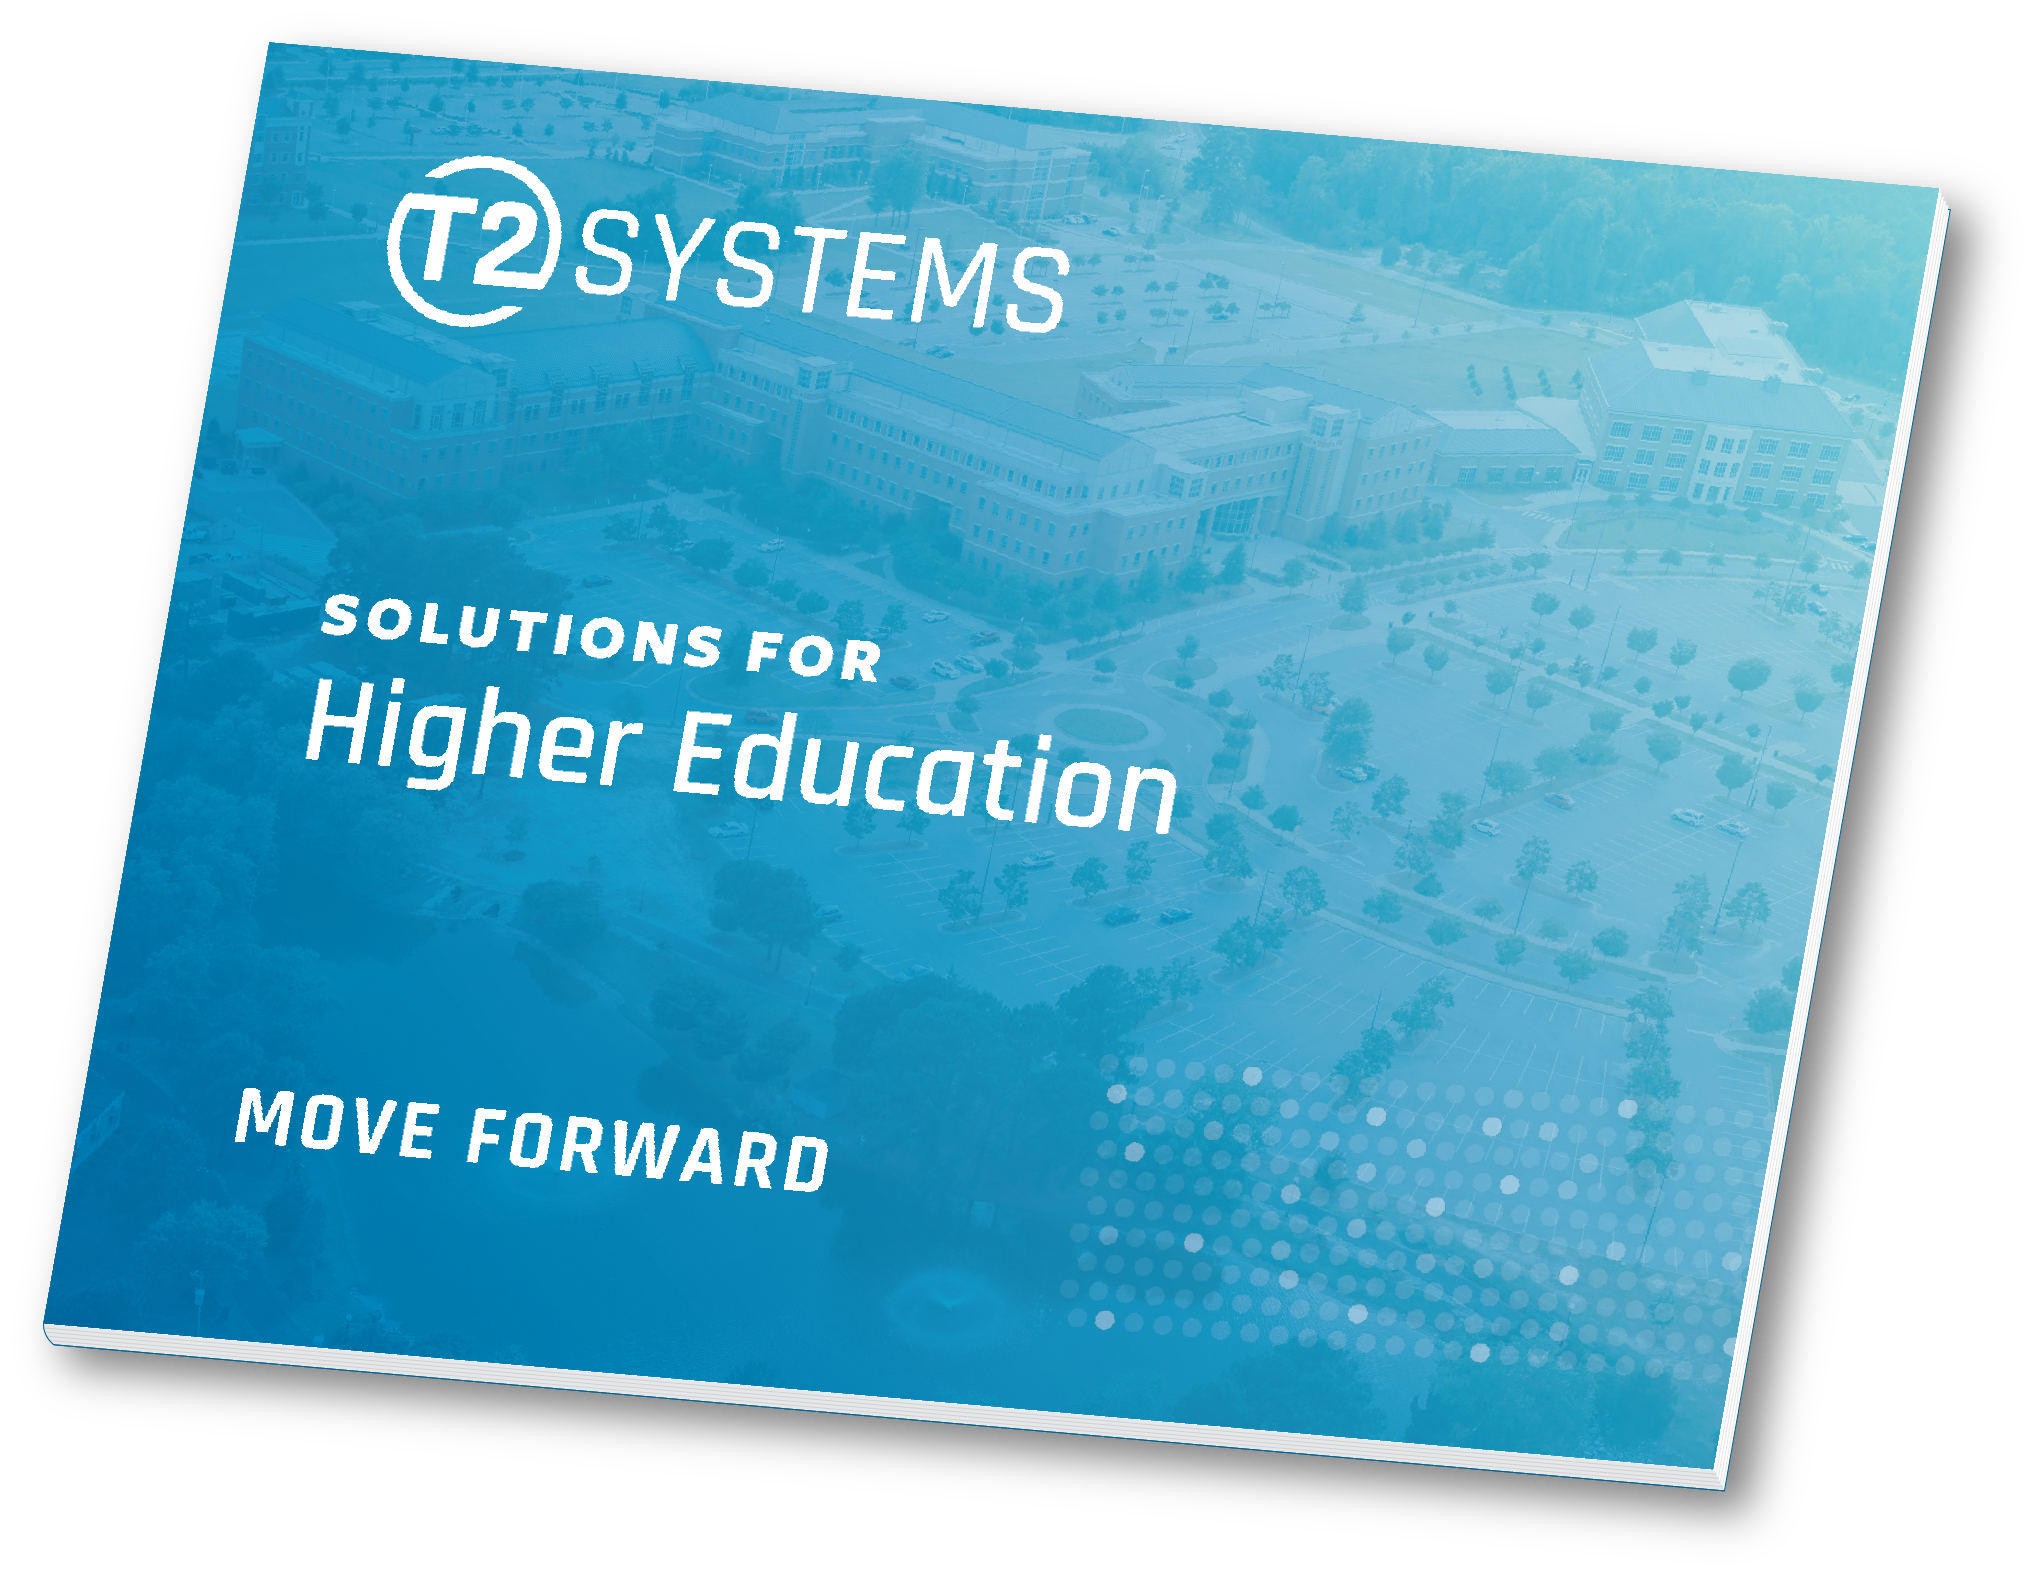 Solutions for Higher Education Brochure